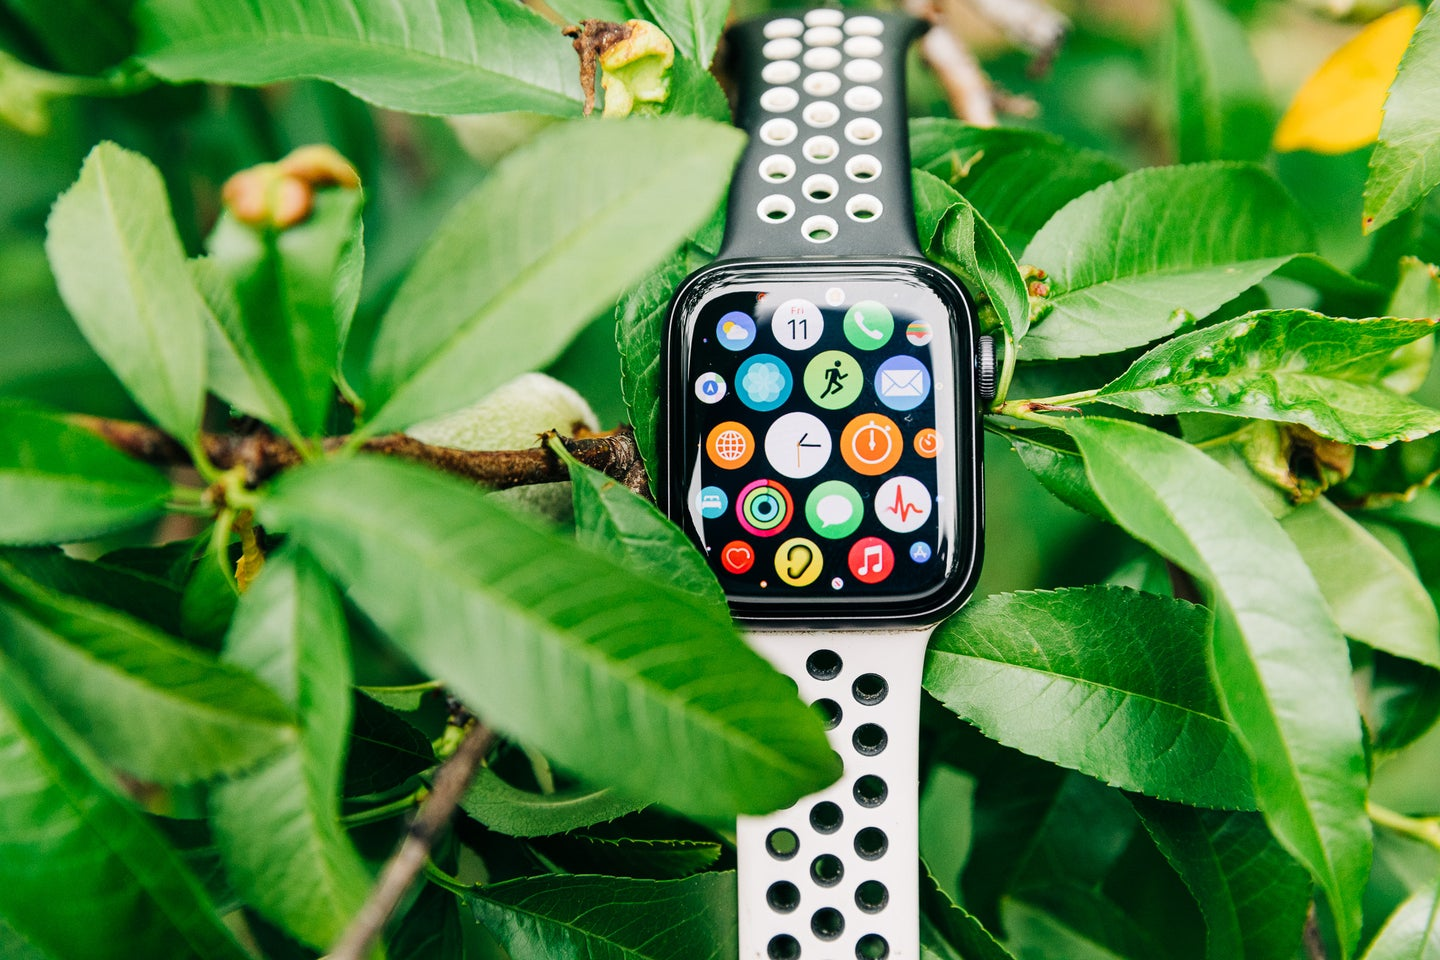 Apple Watch Series 6 in a plant with apps on the screen